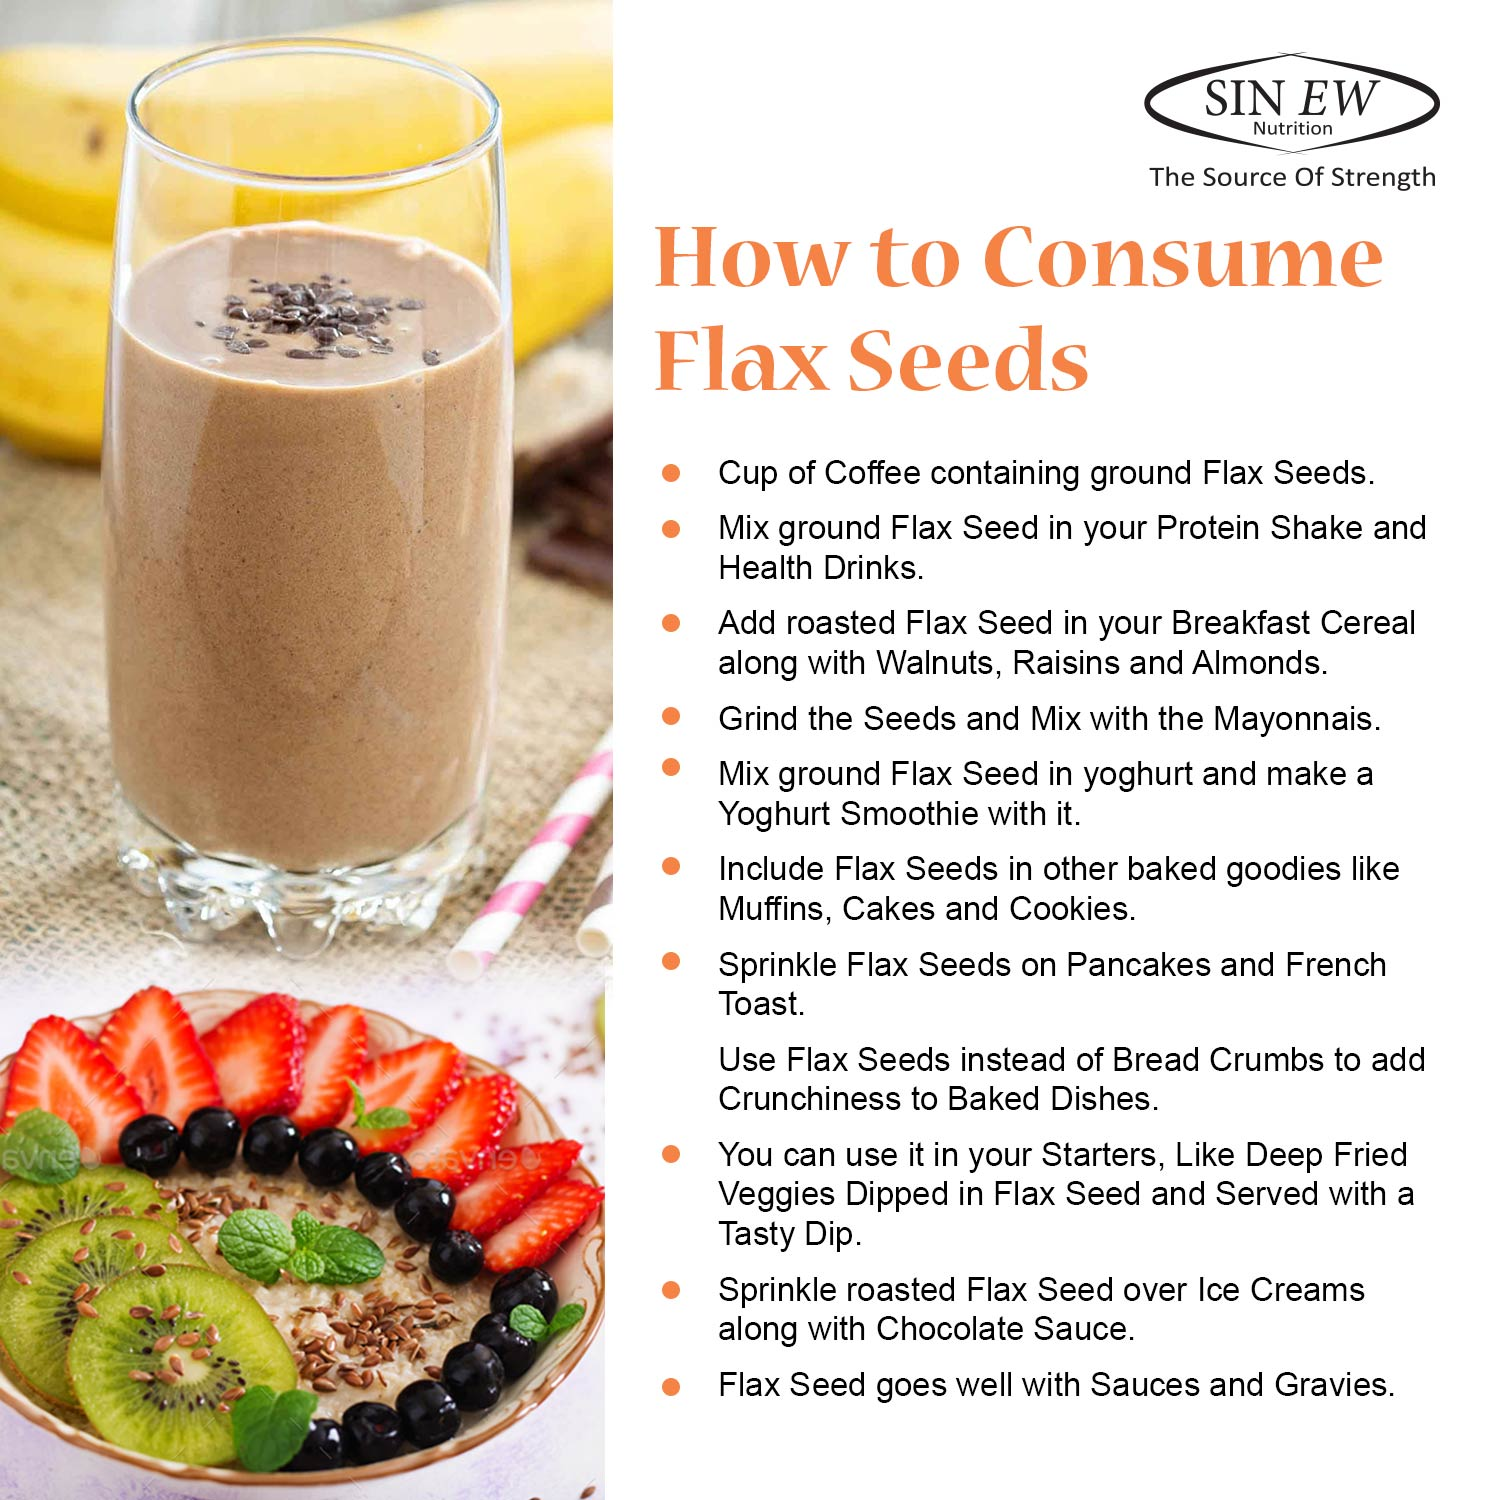 How To Consume Flax Seeds